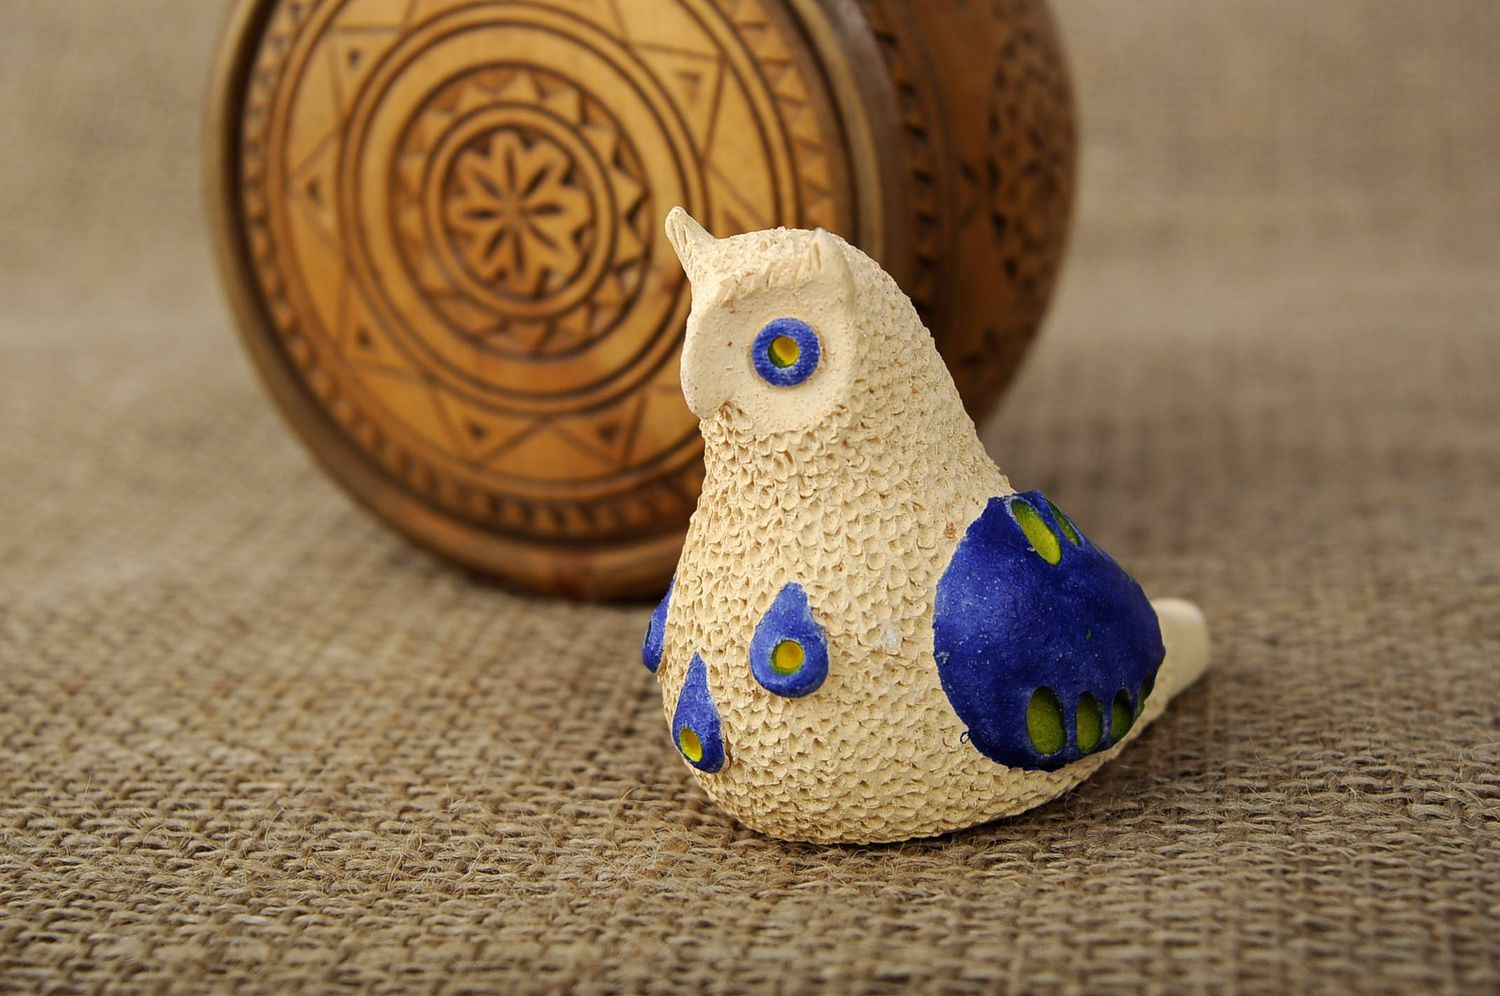 Penny whistle in the form of owl made of clay photo 5